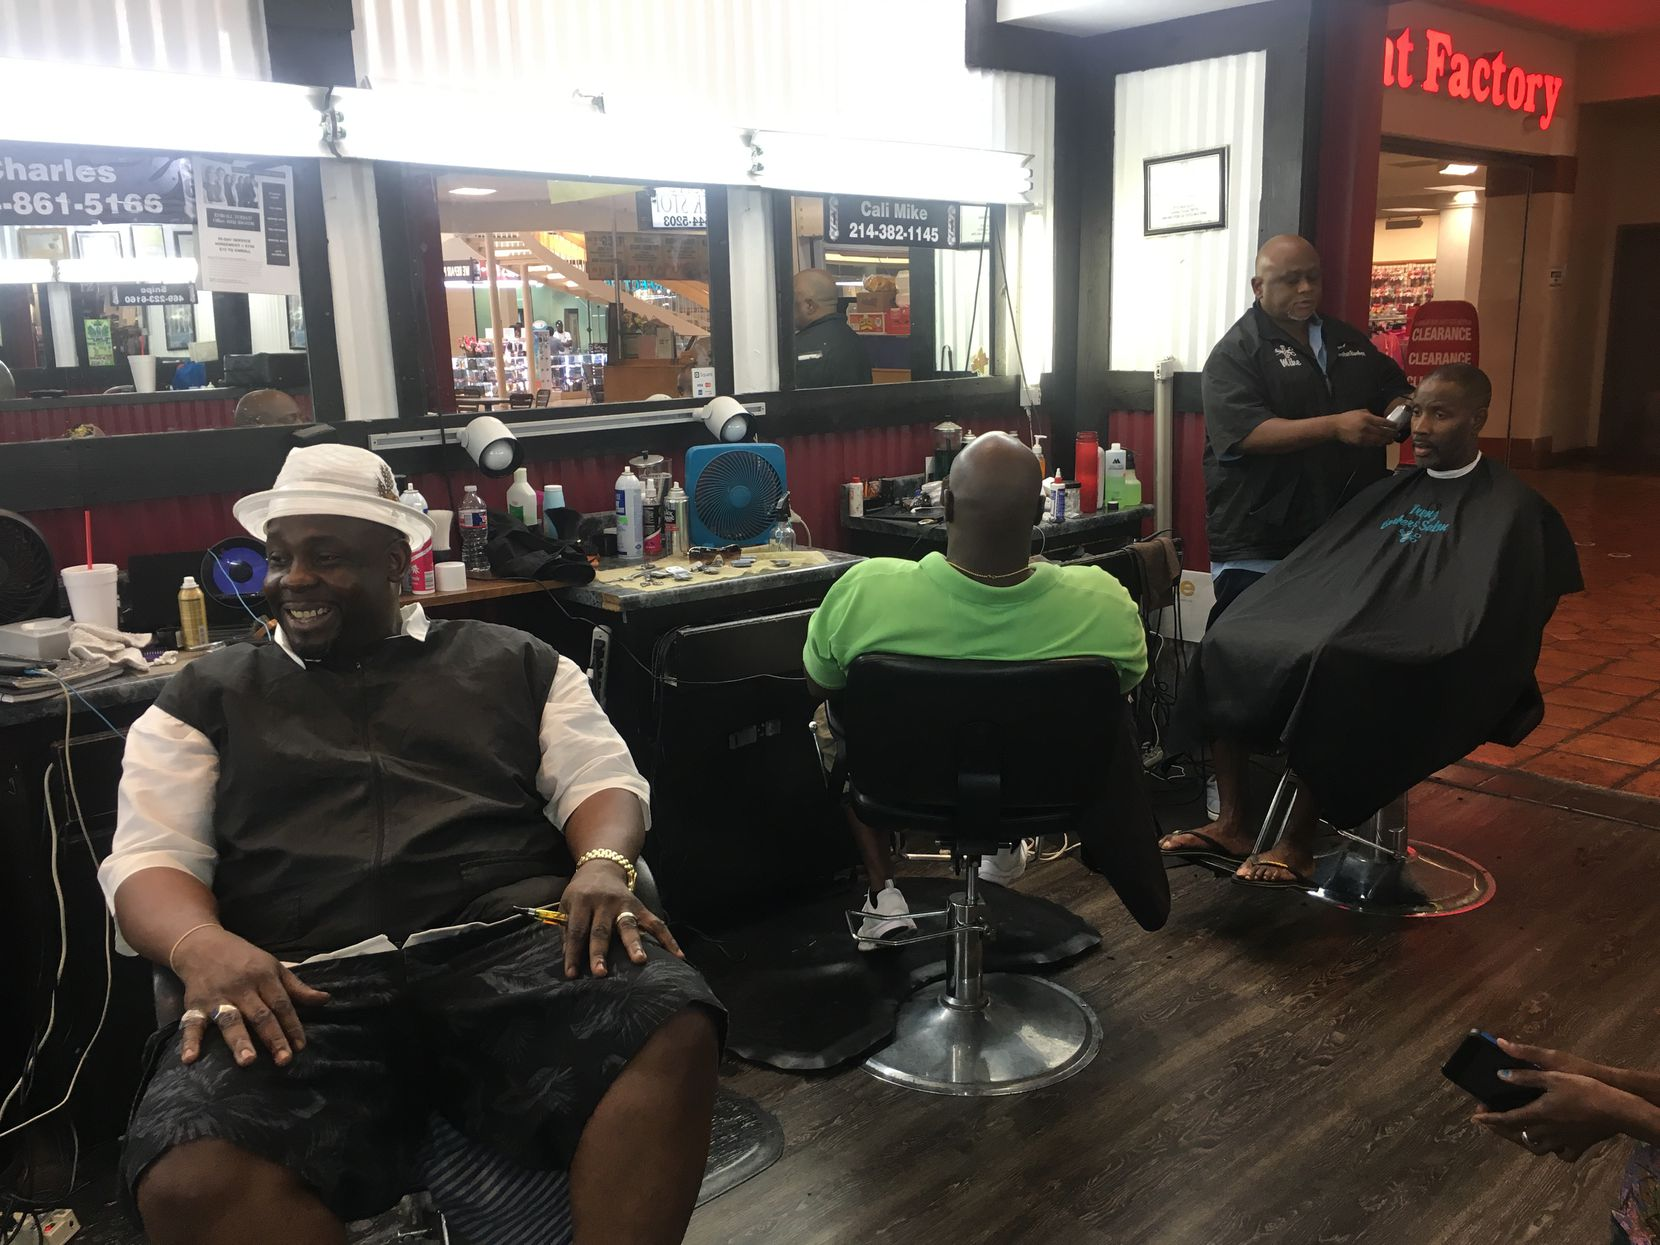 Men hang out at Trendz Barber Shop in Southwest Center Mall, discussing Thursday's protest that turned violent.